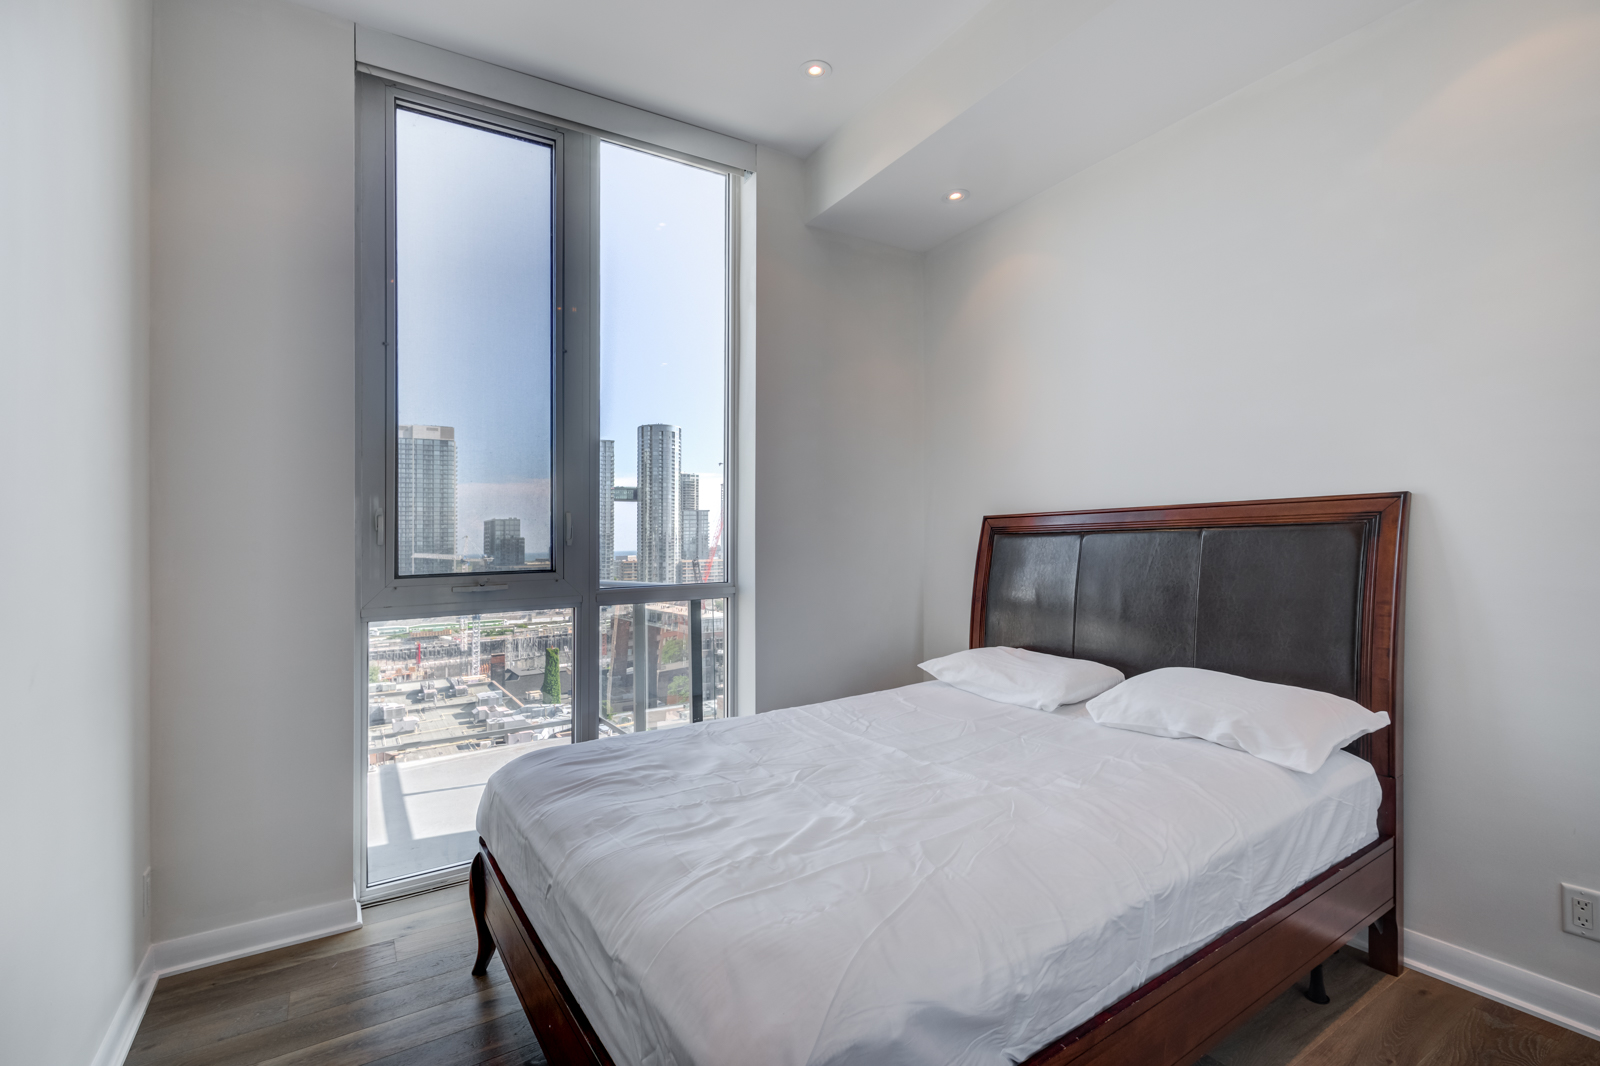 2nd bedroom and window view of Victory Lofts Penthouse Suite in 478 King St W Toronto.